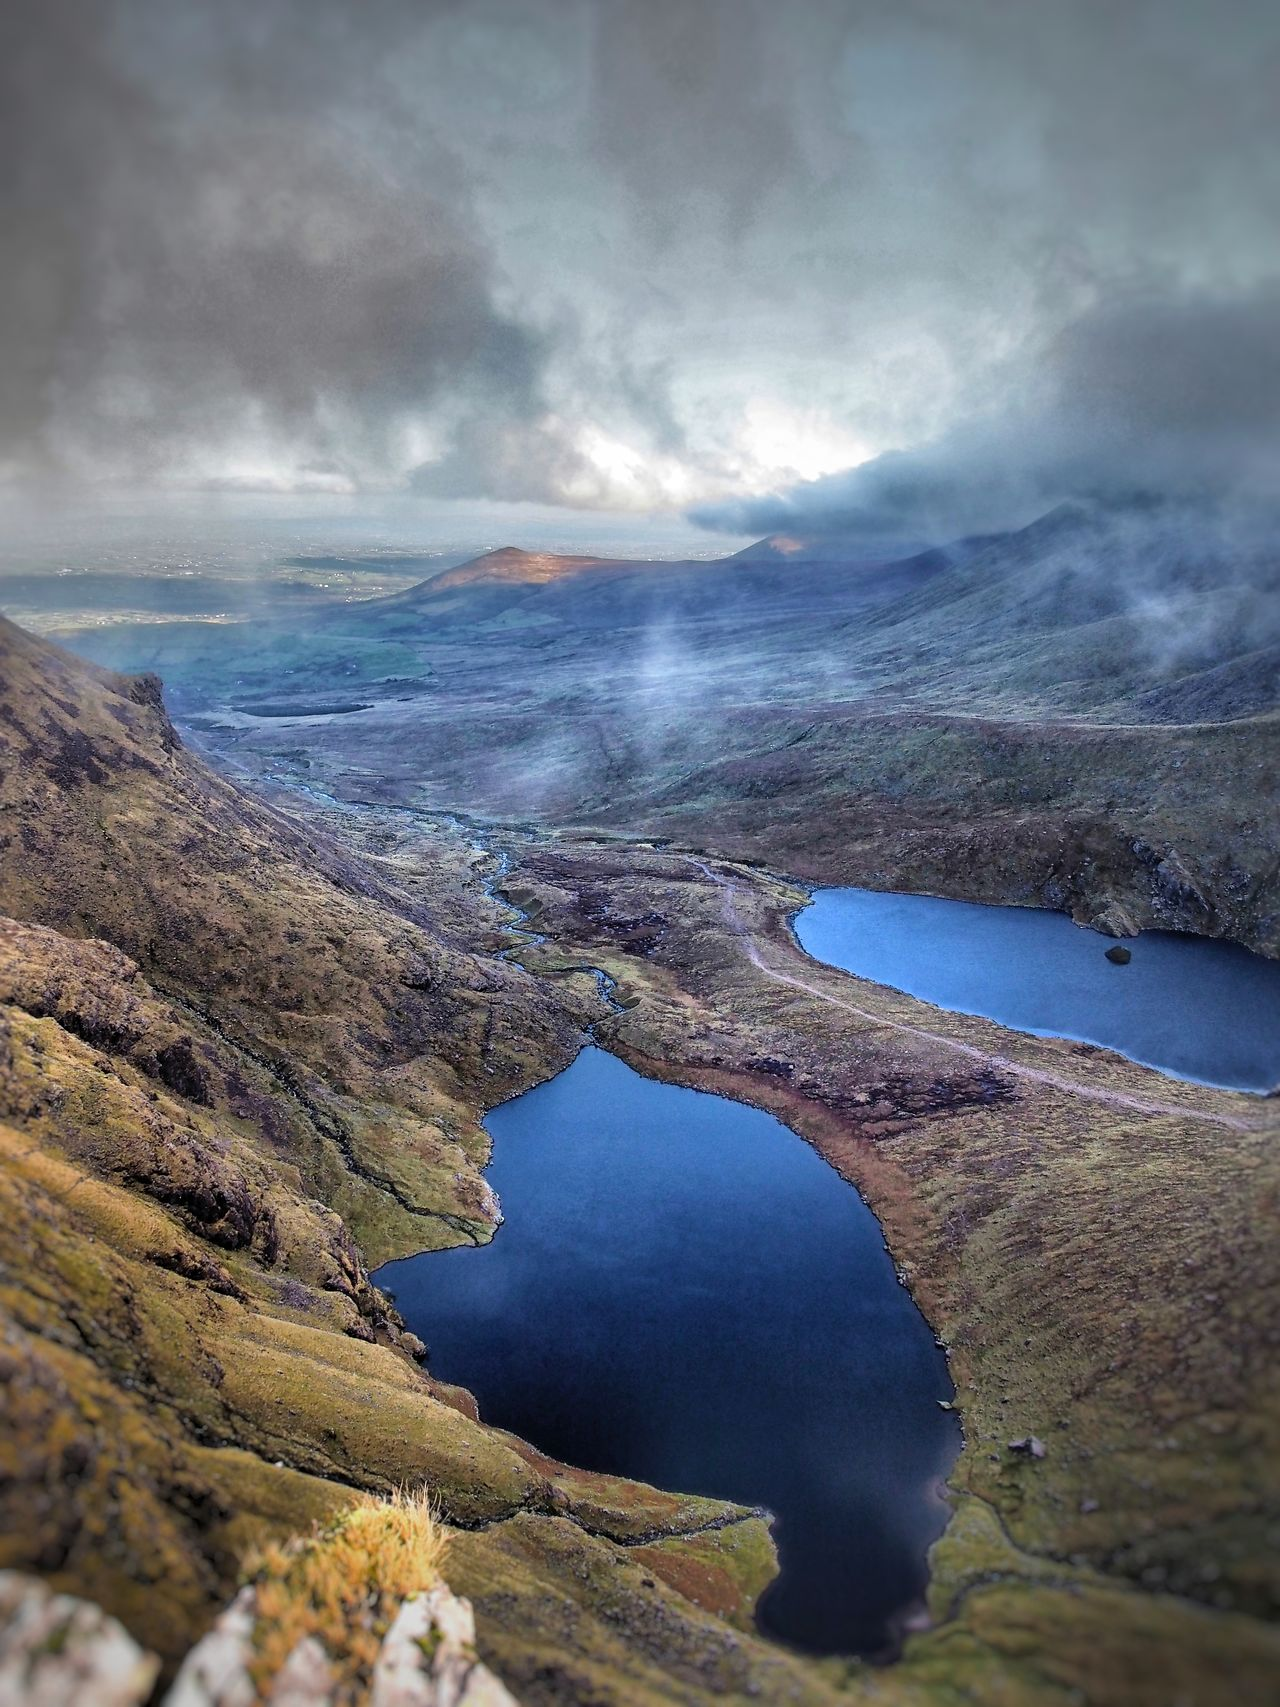 Hag's Glen Macgillycuddy's Reeks Ireland Landscape Nature No People Outdoors Beauty In Nature Cloud - Sky Glen Lough Gouragh Lough Callee Lough Mountain Range Hiking Photography Landscapes Lake Miles Away